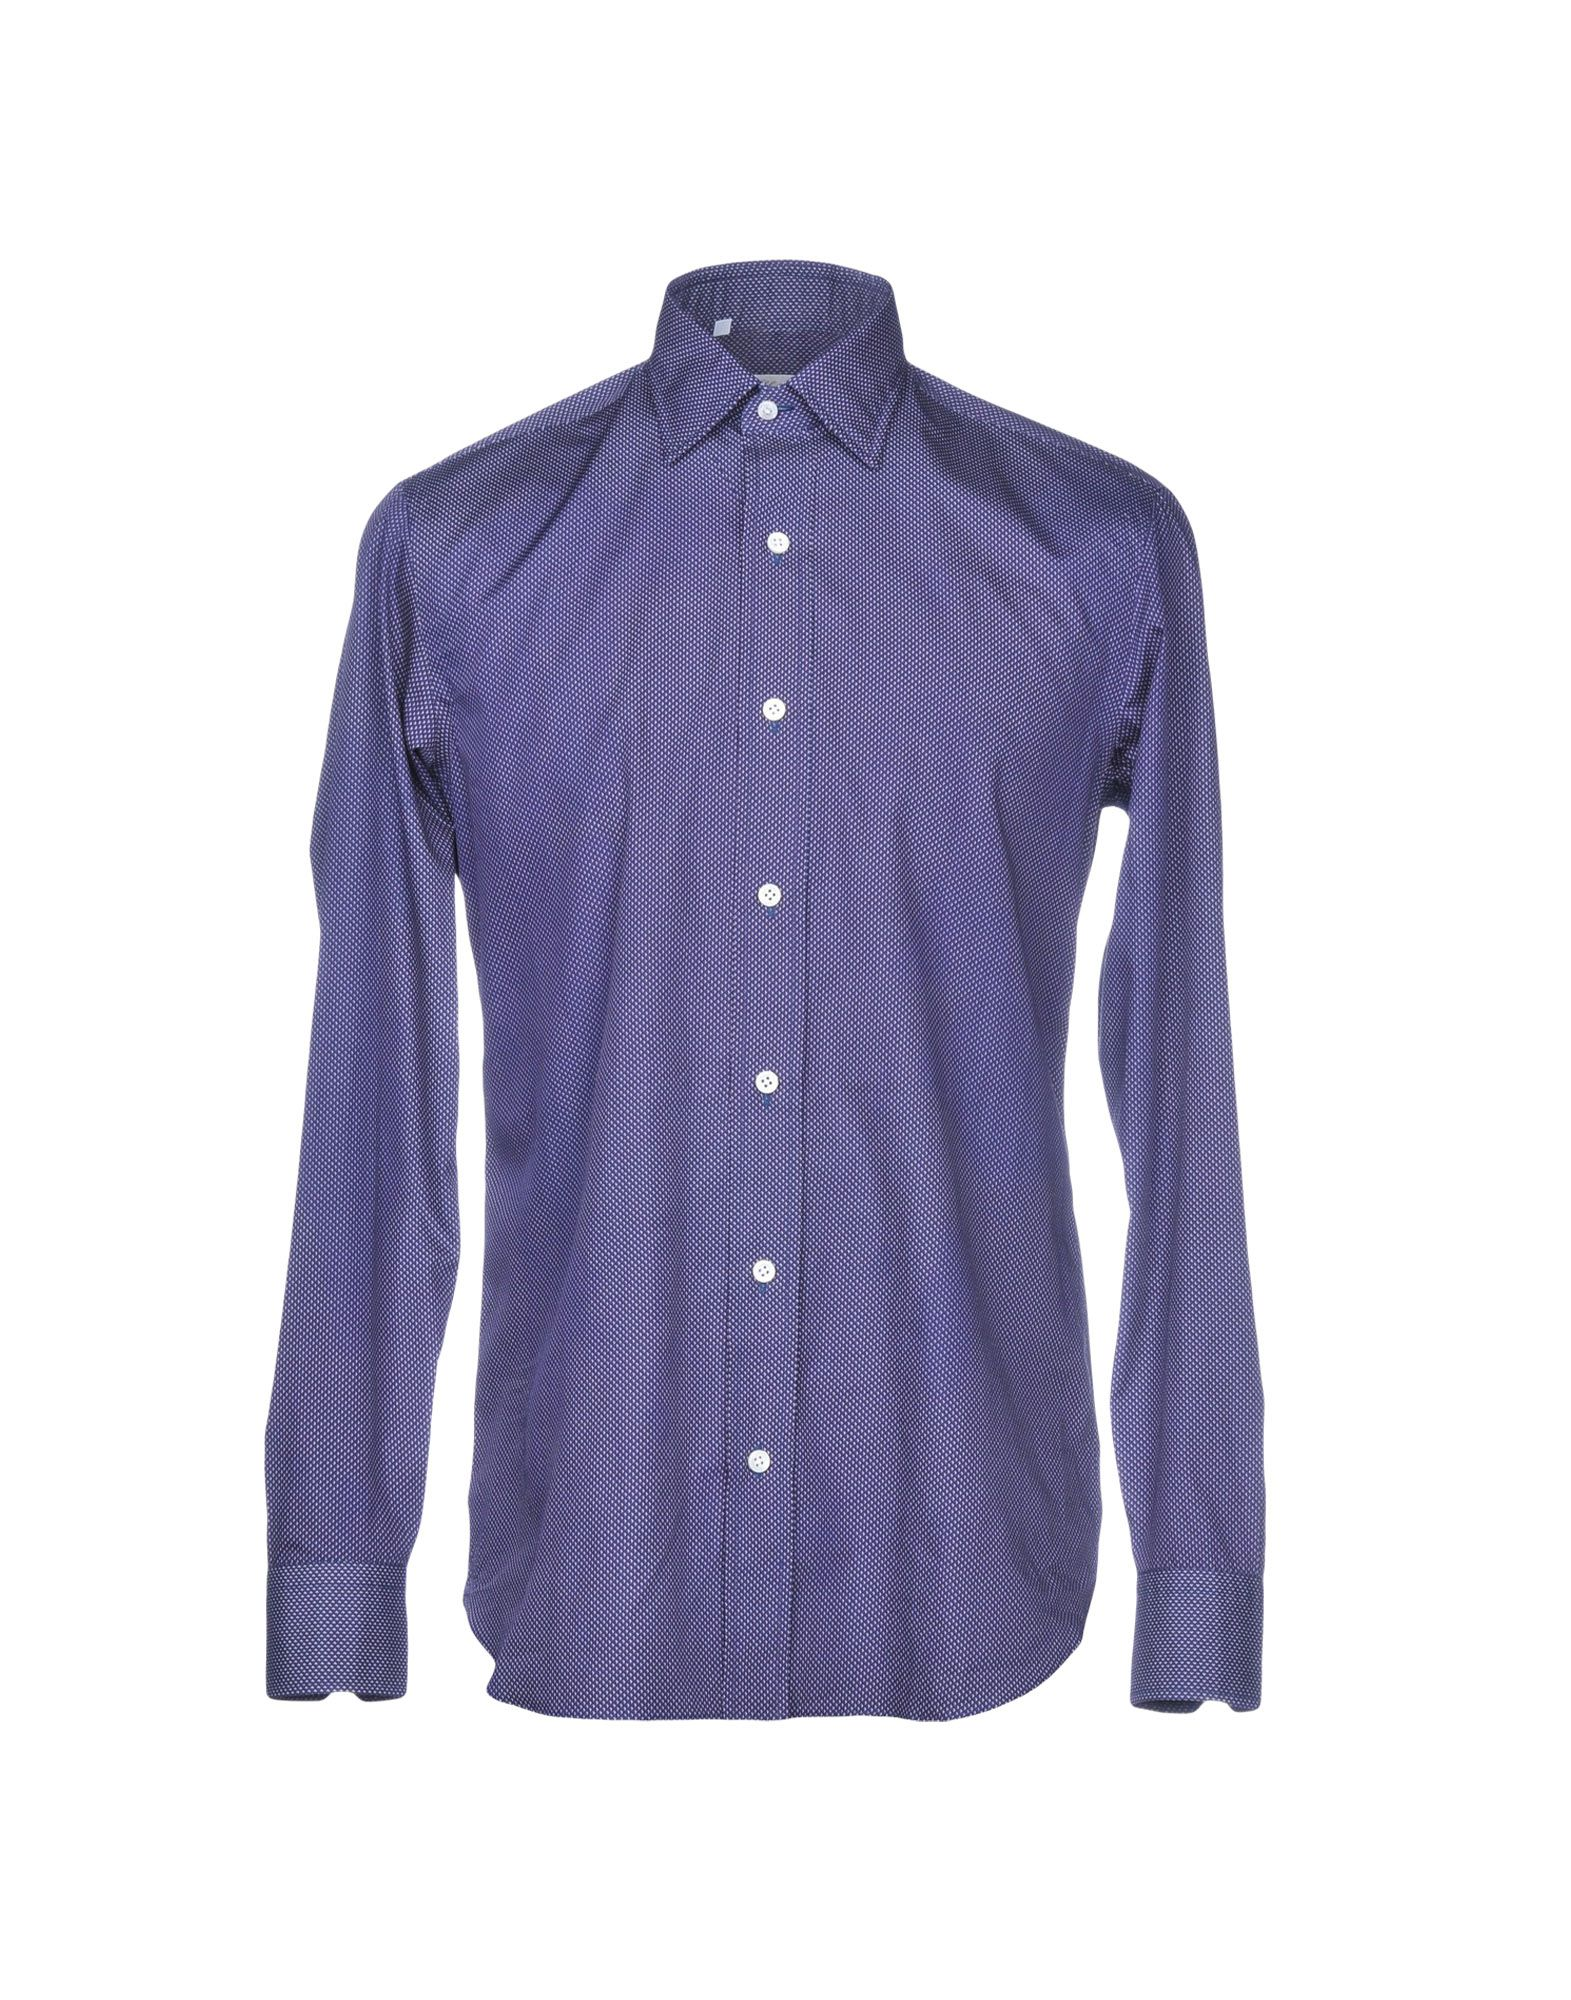 SALVATORE PICCOLO Patterned Shirt in Dark Blue